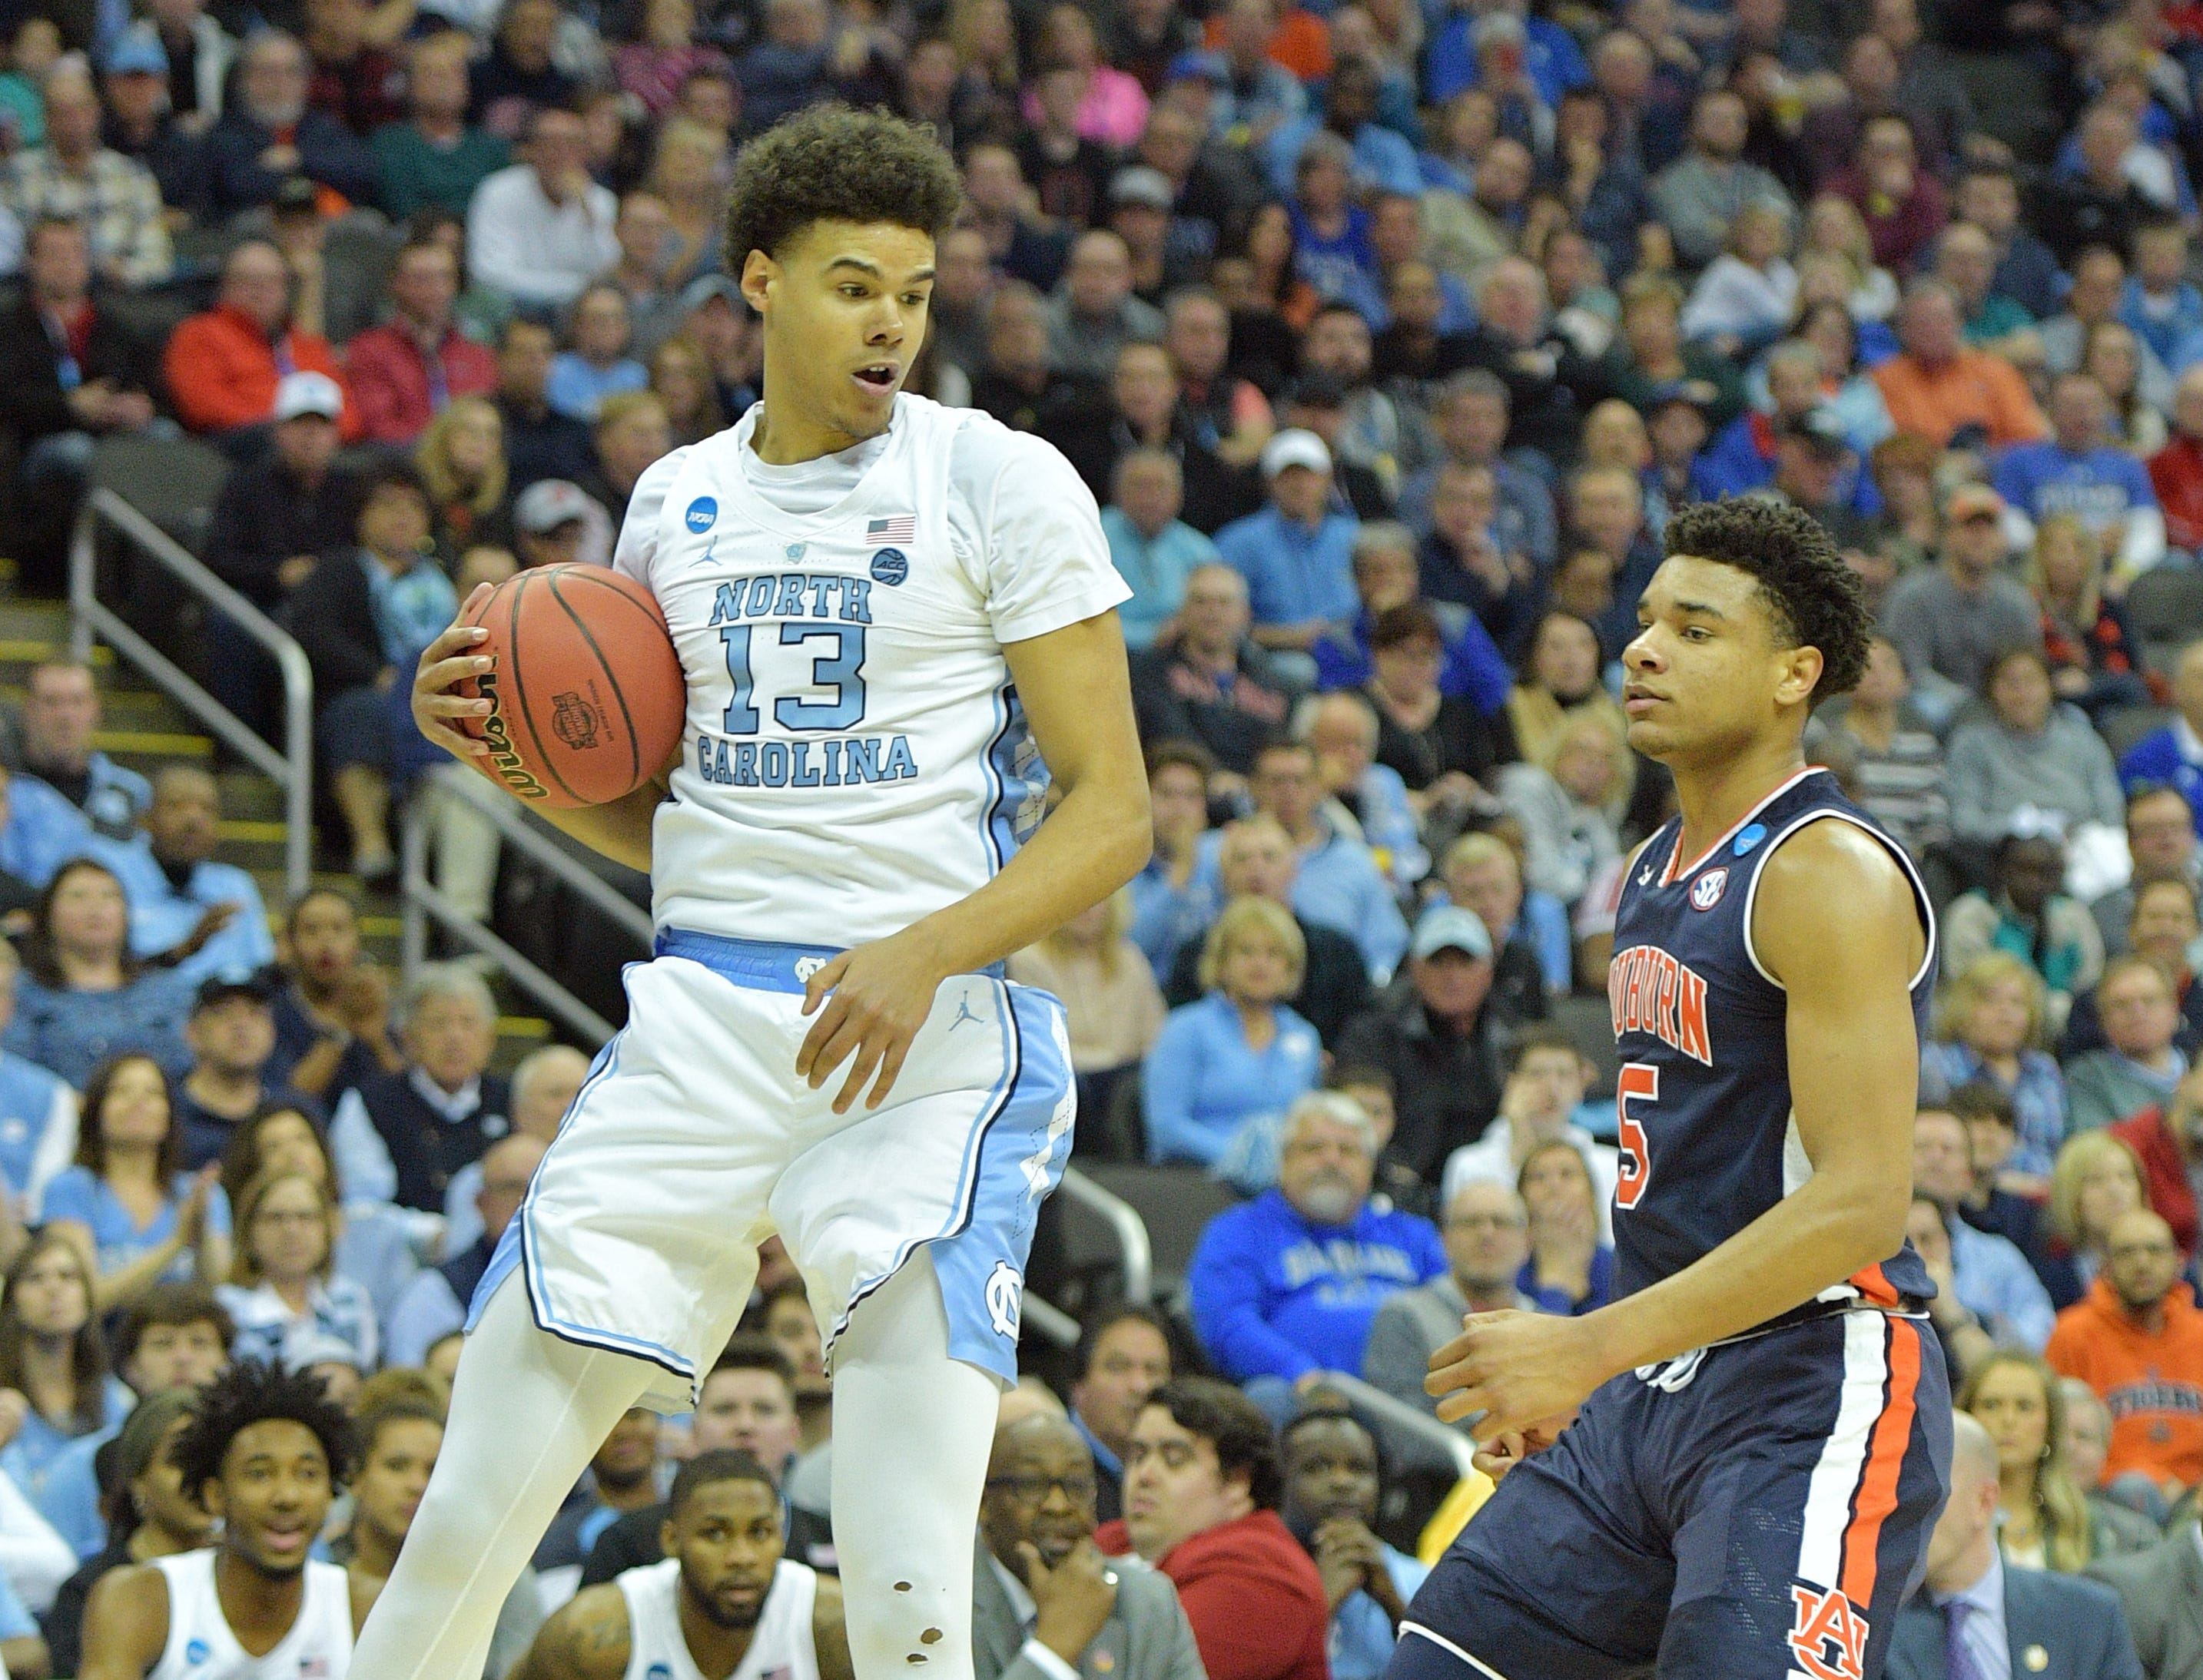 Mar 29, 2019; Kansas City, MO, United States; North Carolina Tar Heels guard Cameron Johnson (13) rebounds the ball against Auburn Tigers forward Chuma Okeke (5) during the first half in the semifinals of the midwest regional of the 2019 NCAA Tournament at Sprint Center. Mandatory Credit: Denny Medley-USA TODAY Sports